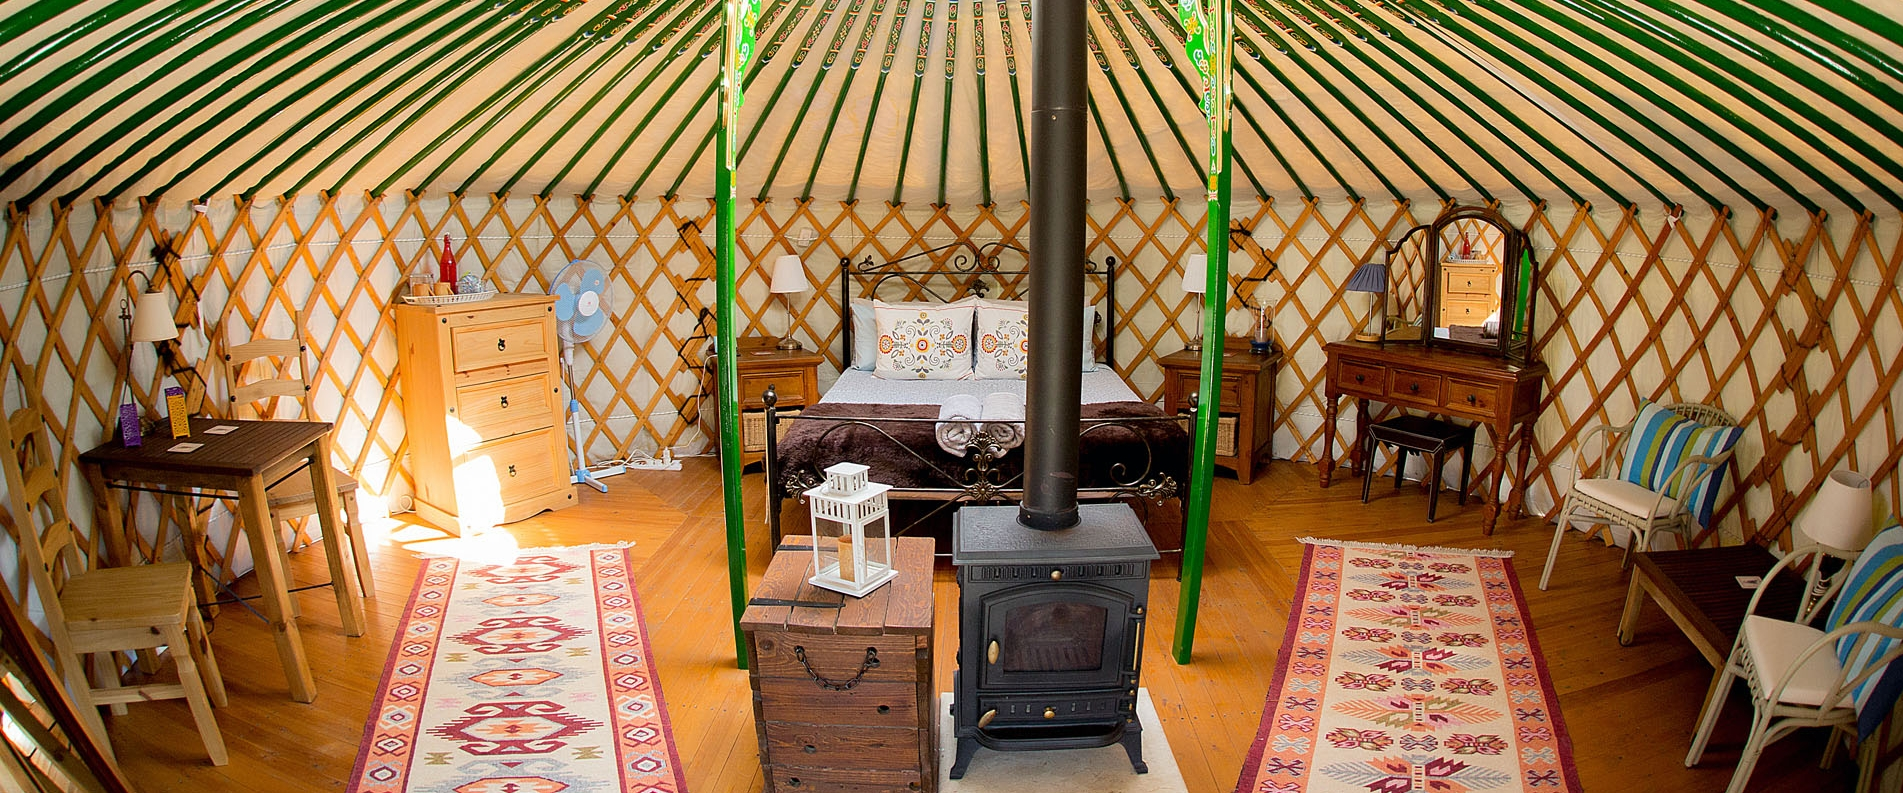 Mongolian yurts campsite in Cyprus